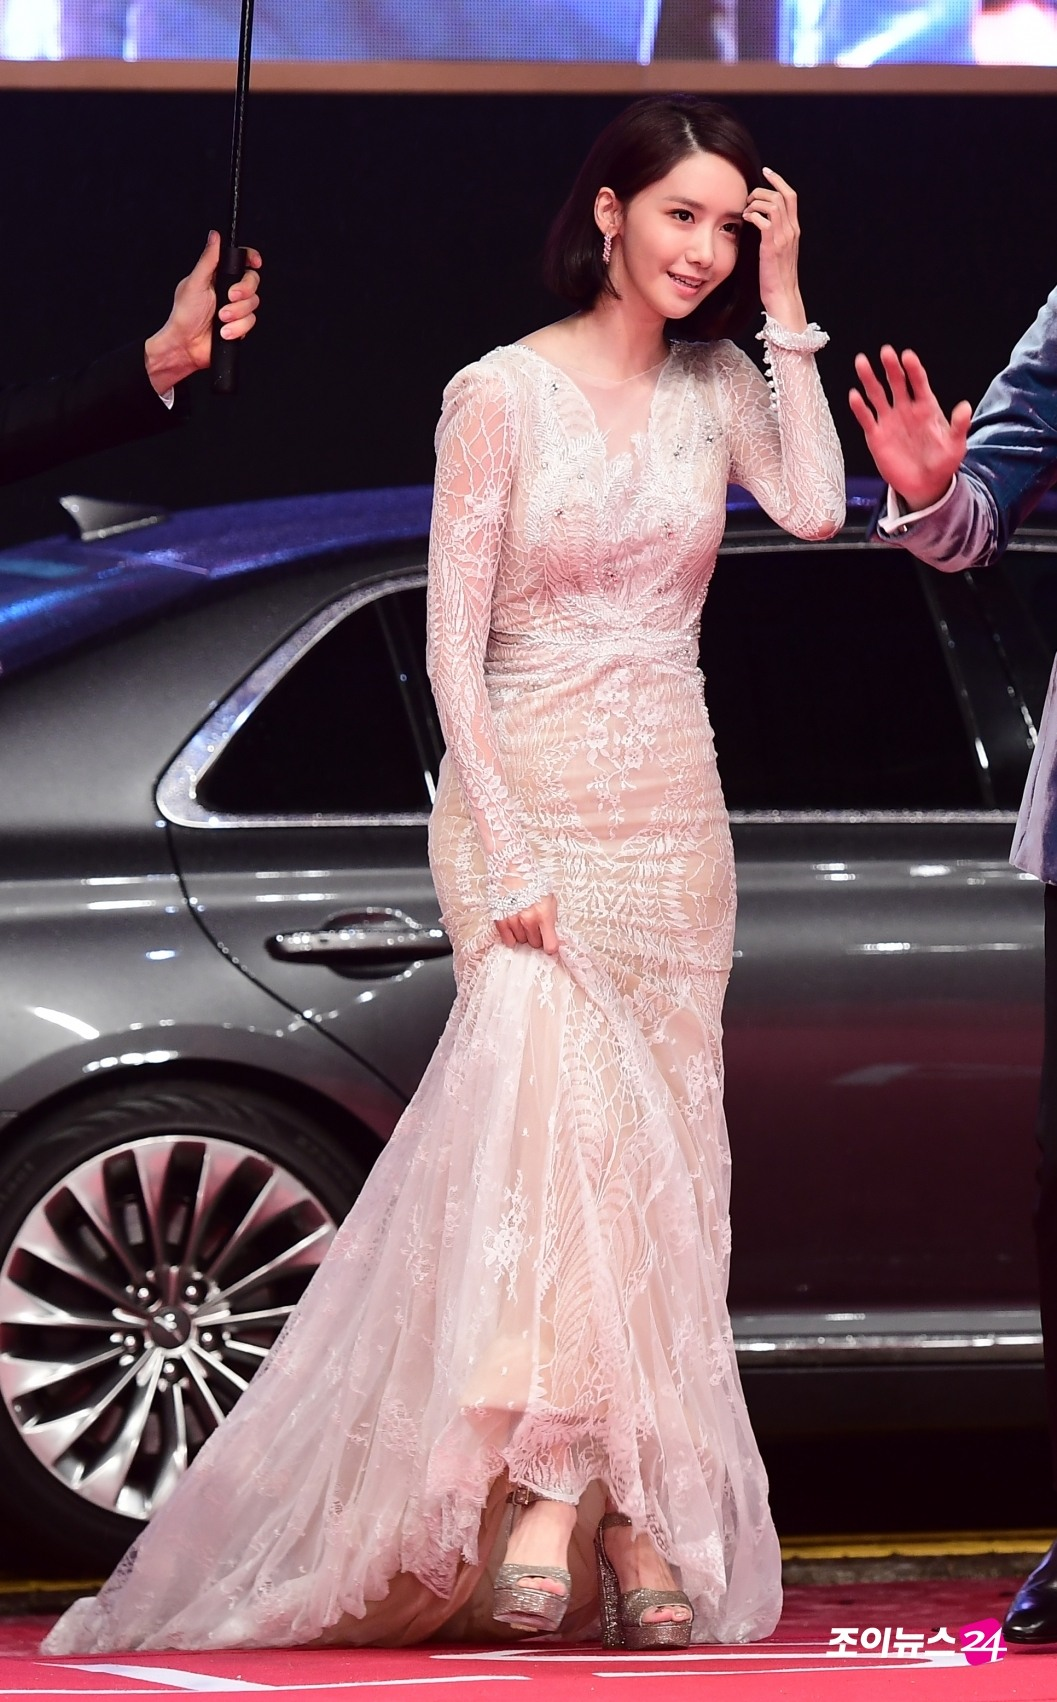 yoona u0026 39 s red carpet dress revealed a clear outline of her